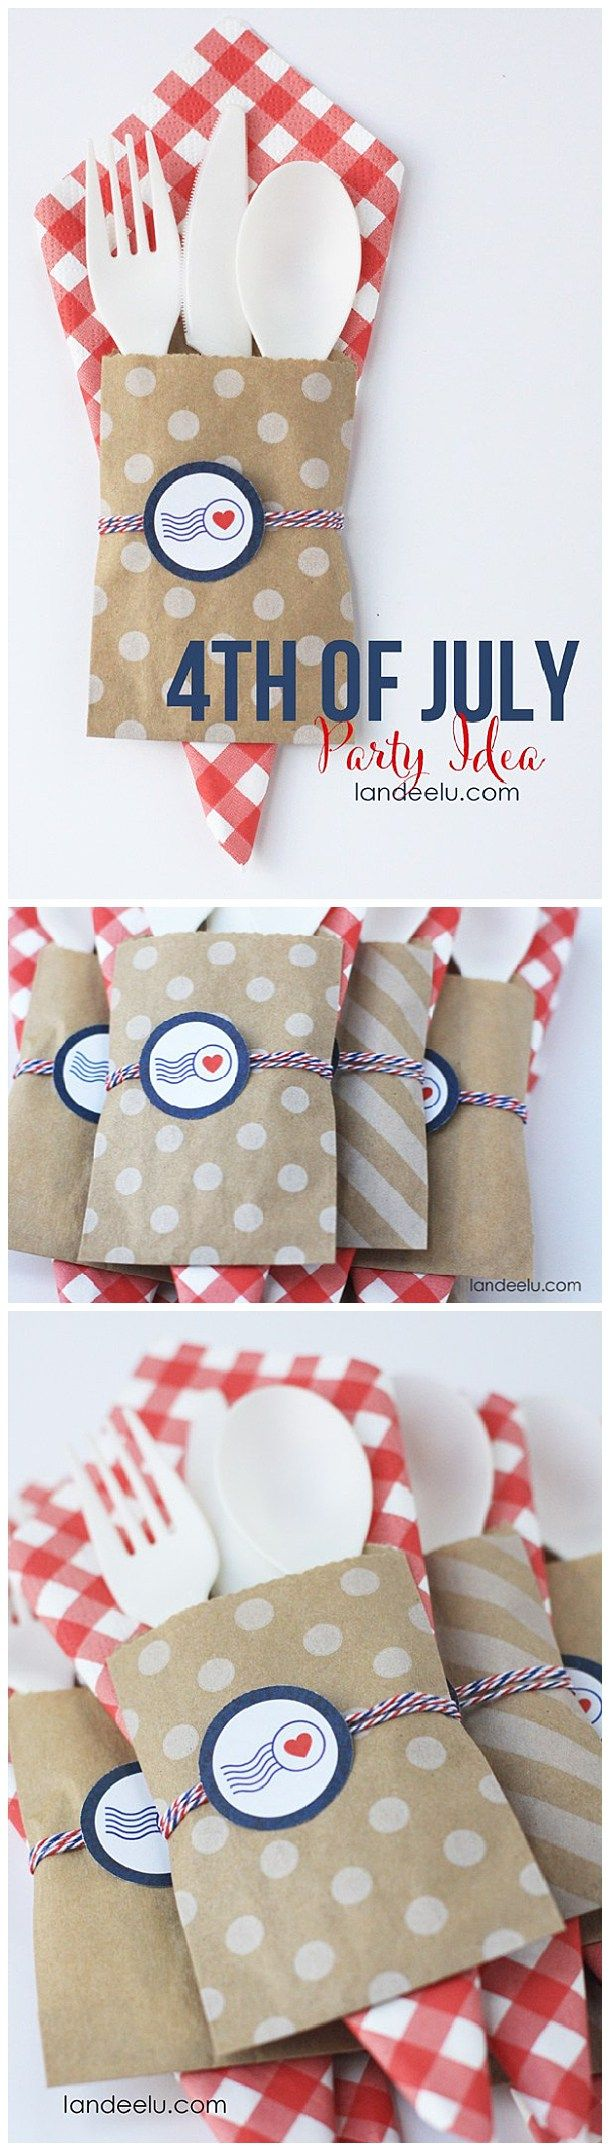 Fourth of July Party Decor: DIY Patriotic Utensil Holders-- so cute!